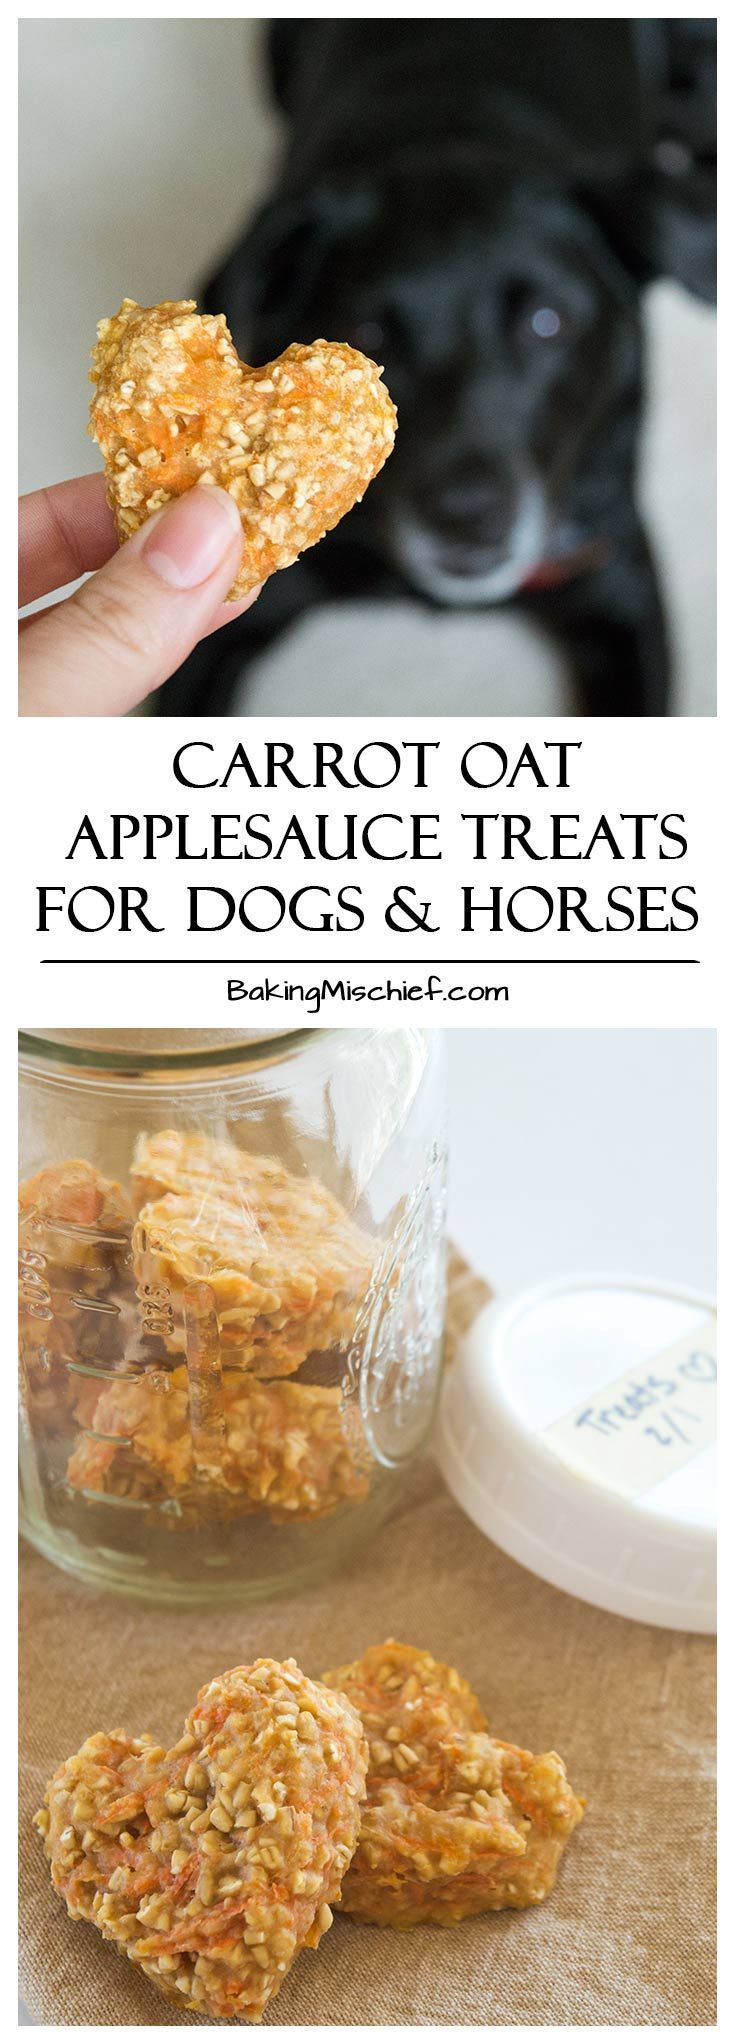 853 best food international foods and recipes images on pinterest carrot oat applesauce treats quick and easy four ingredient treats for dogs and horses forumfinder Choice Image